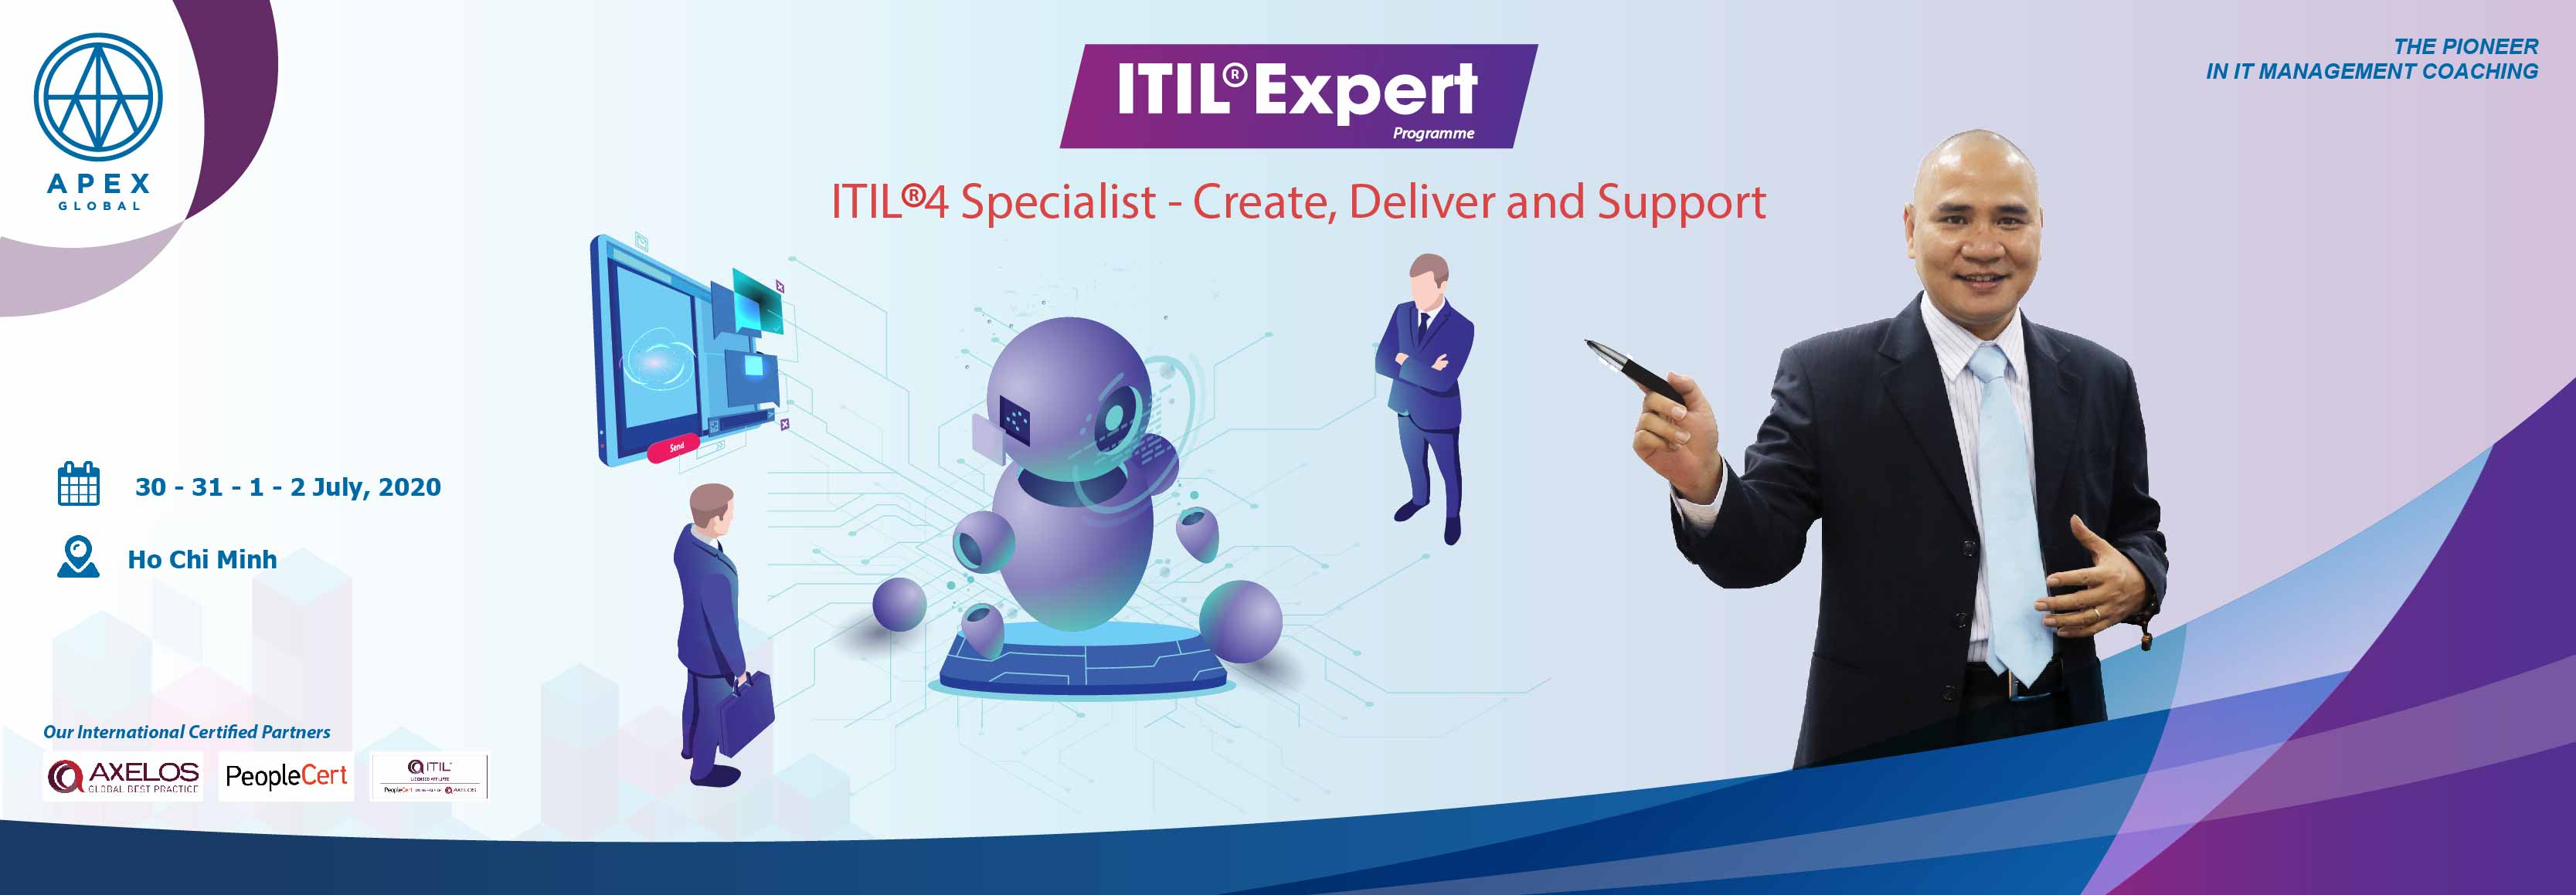 ITIL-Specialist-Create-Deliver-and-Support